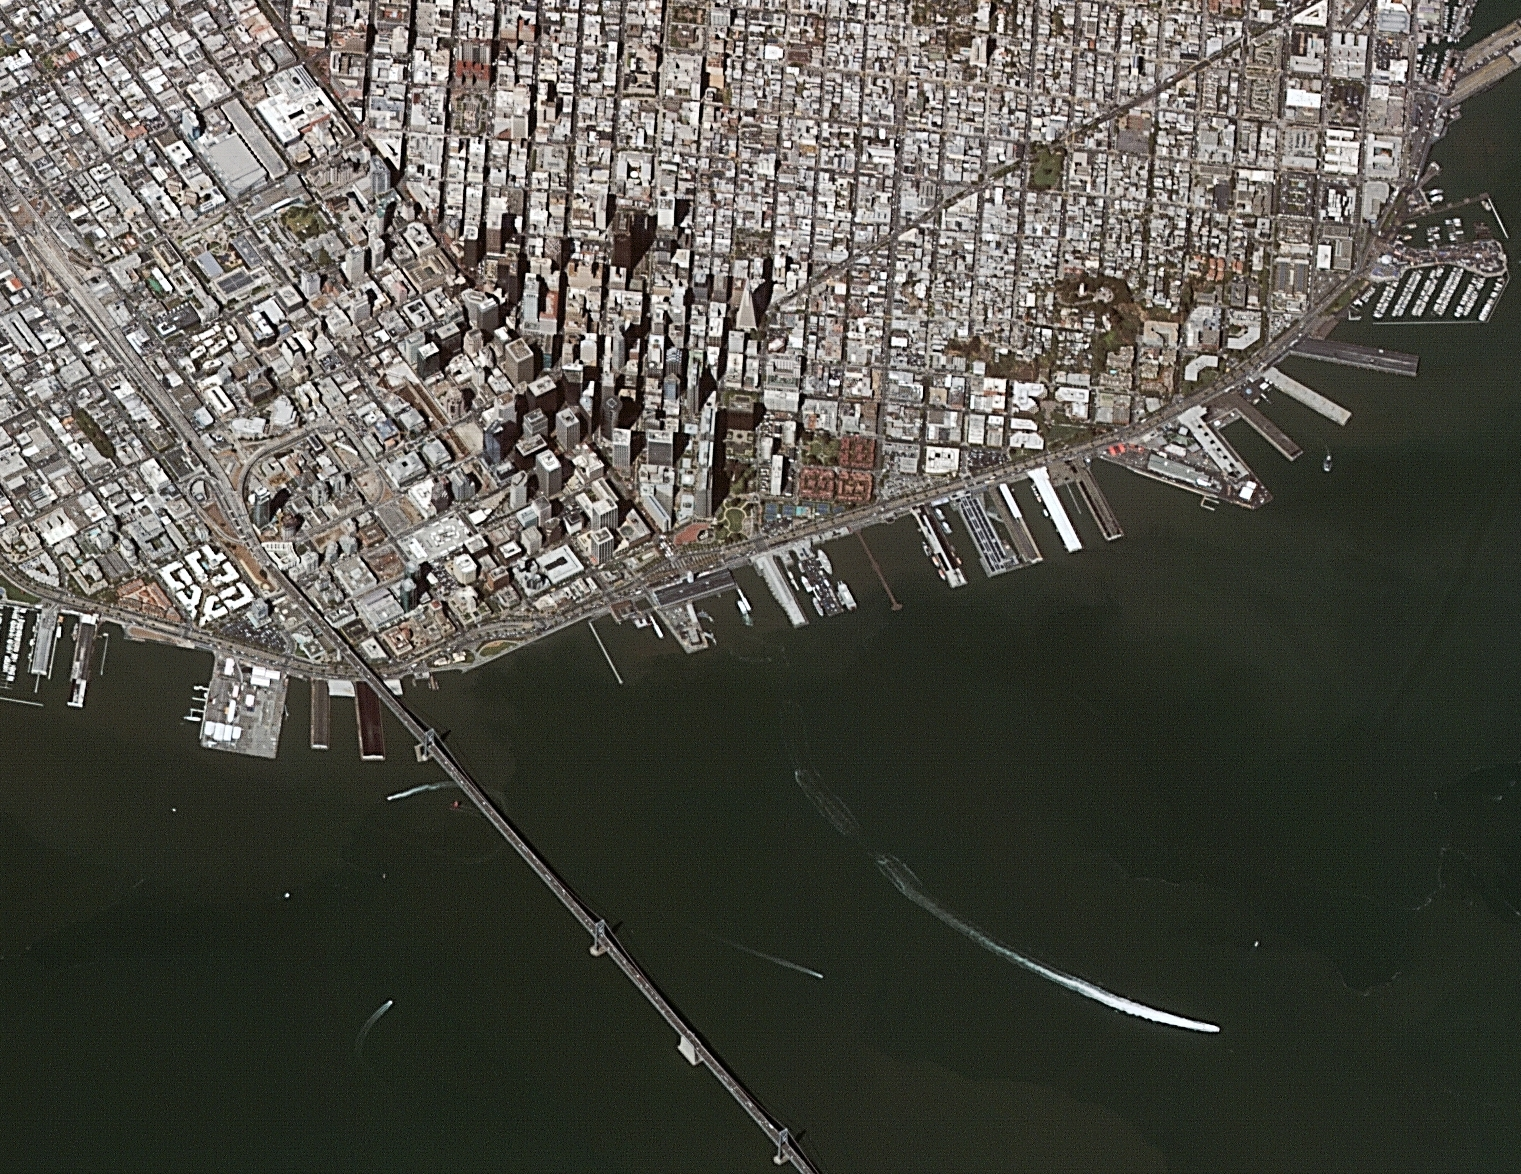 GK2_20130620_SanFrancisco_2_d2